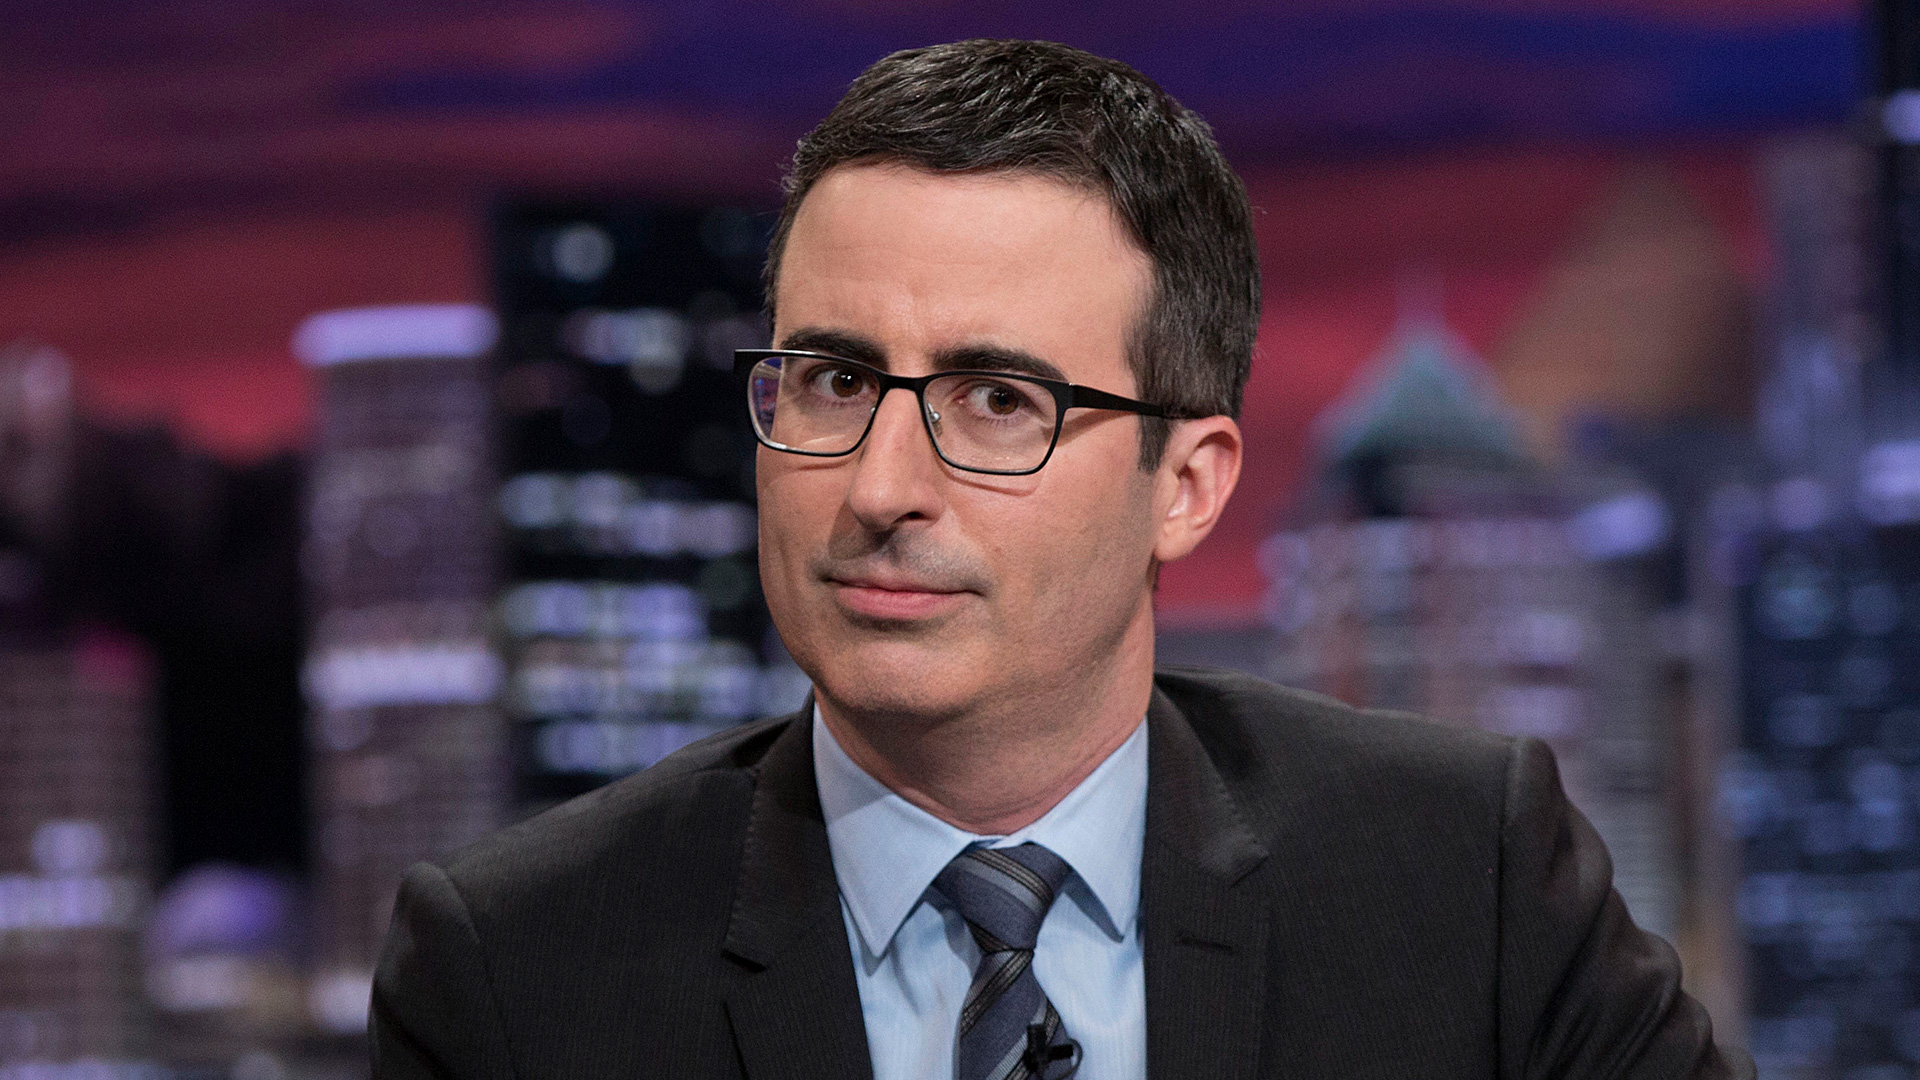 Watch: John Oliver Takes On Donald Trump's War On Truth